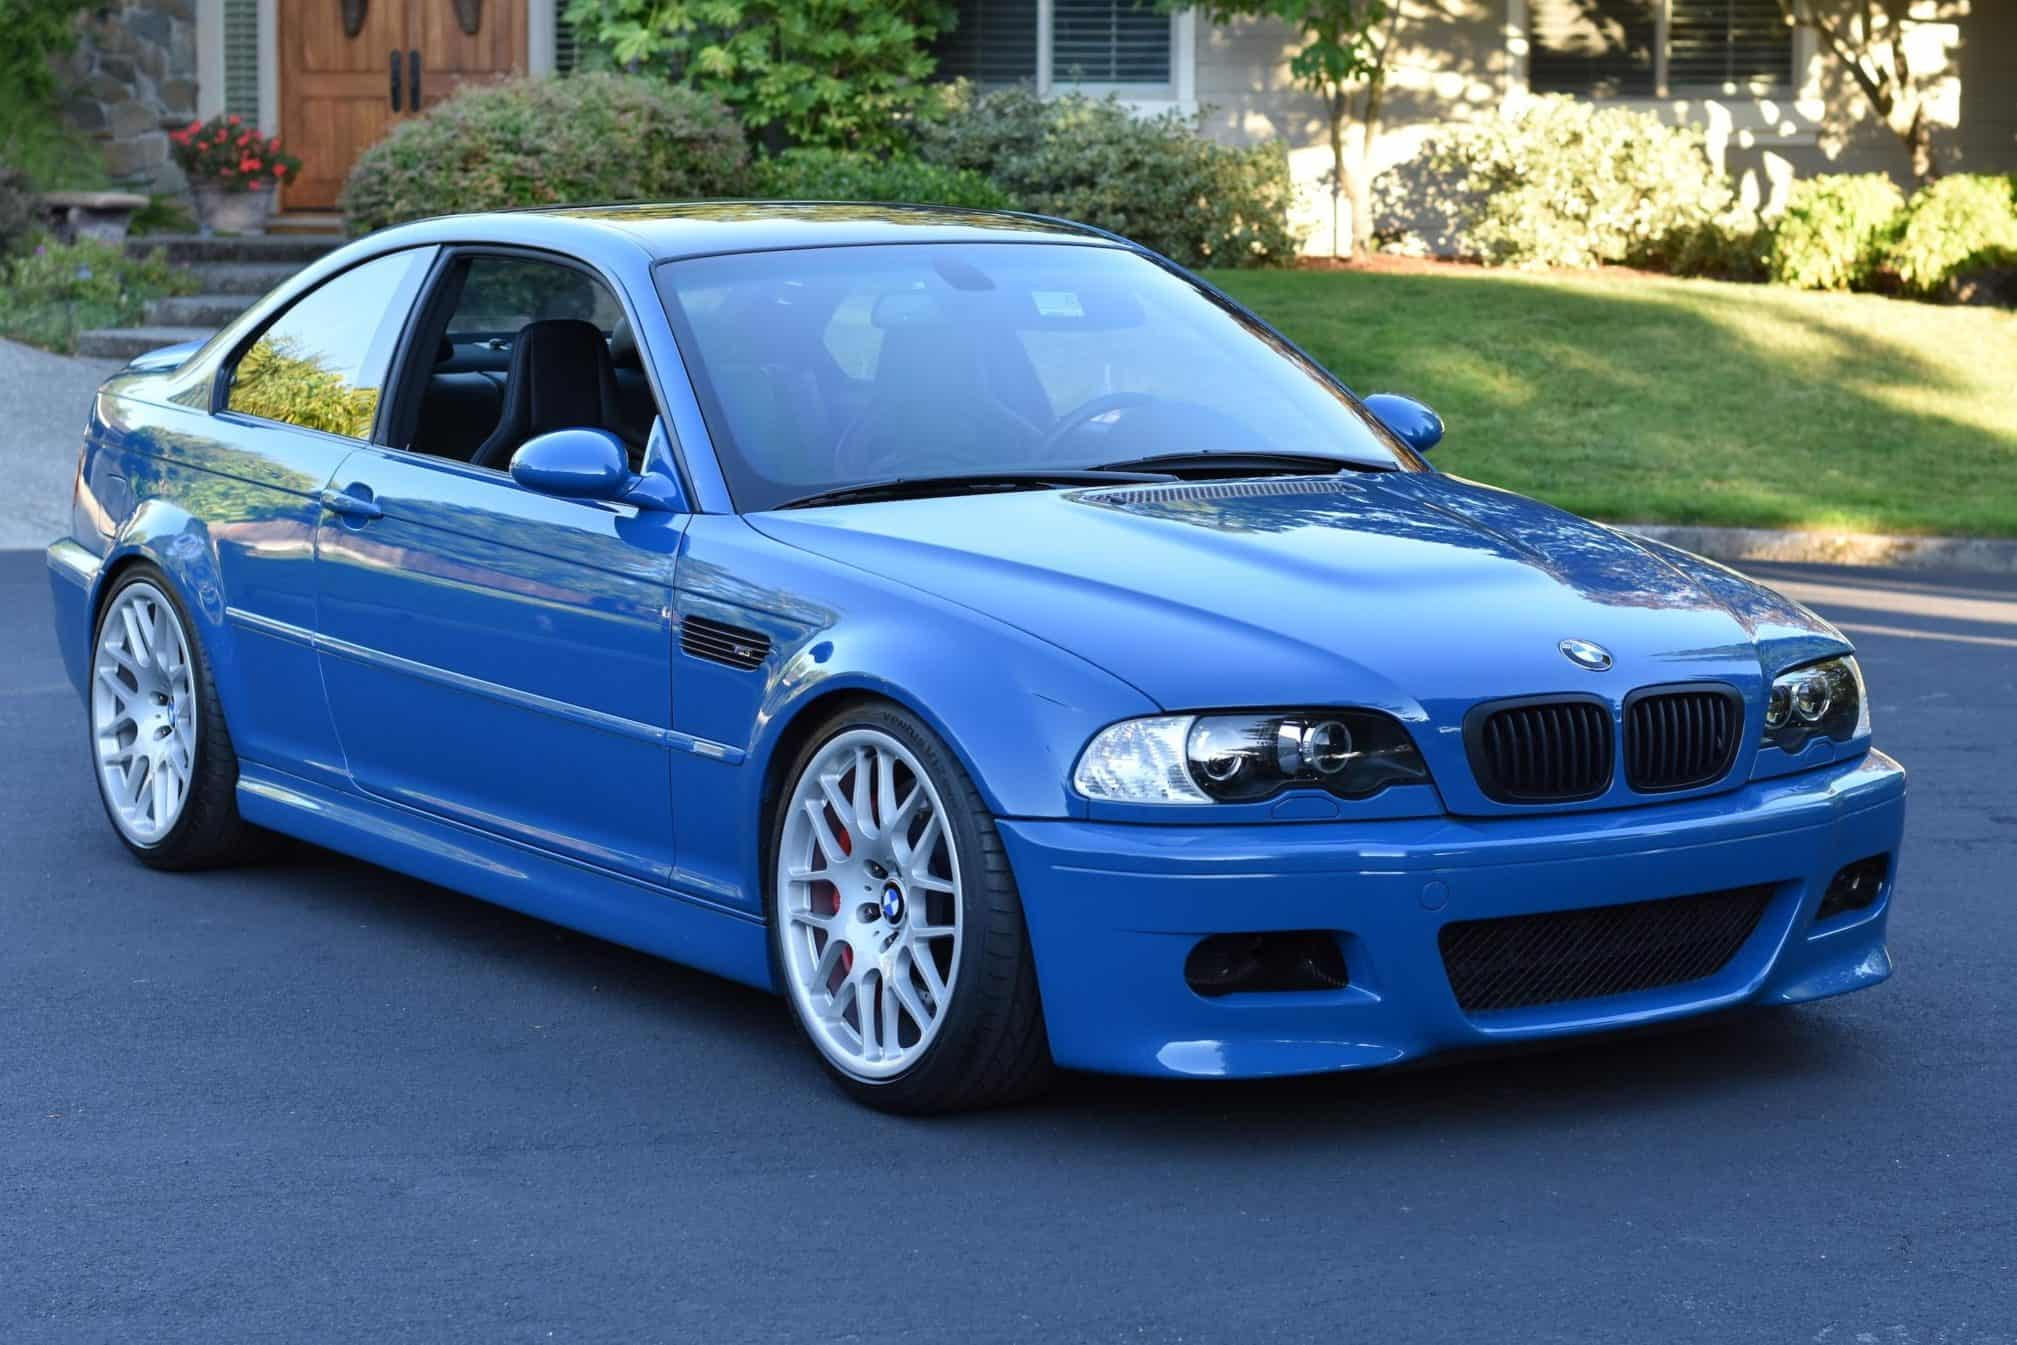 BMW E46 M3 Best car to buy 2020